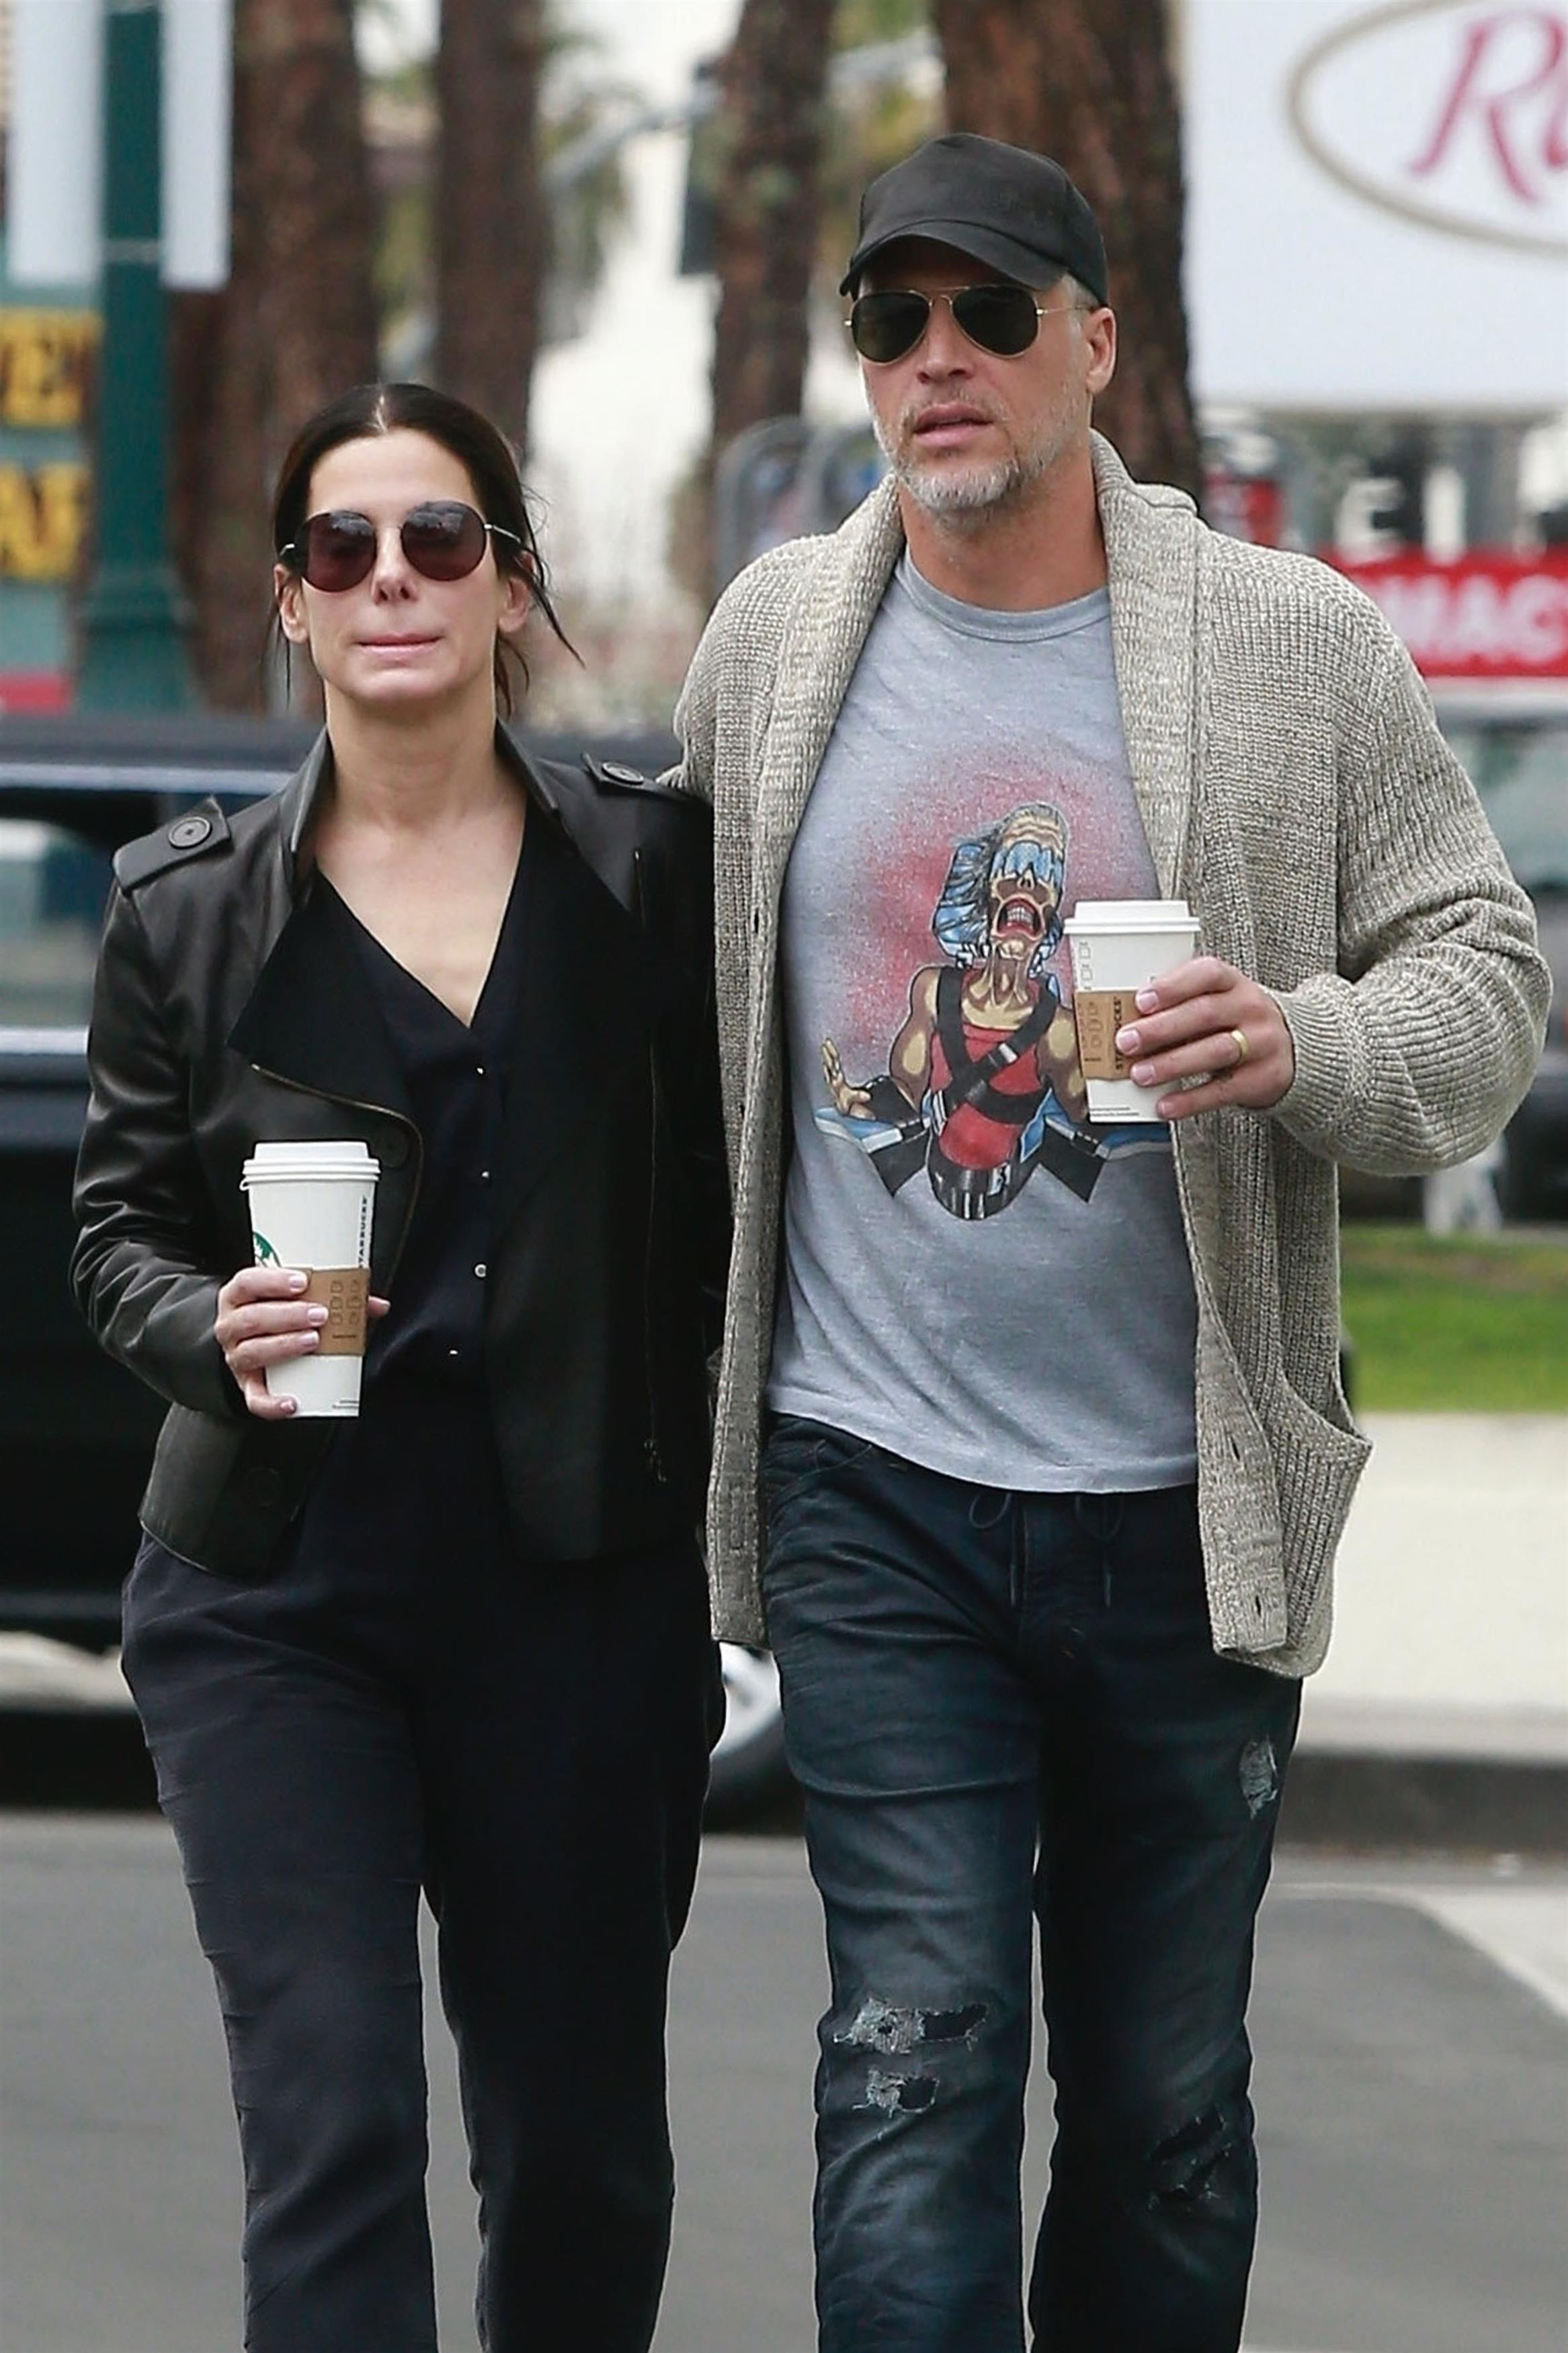 Sandra Bullock and Bryan Randall are spotted out together. (Photo: AKM-GSI)